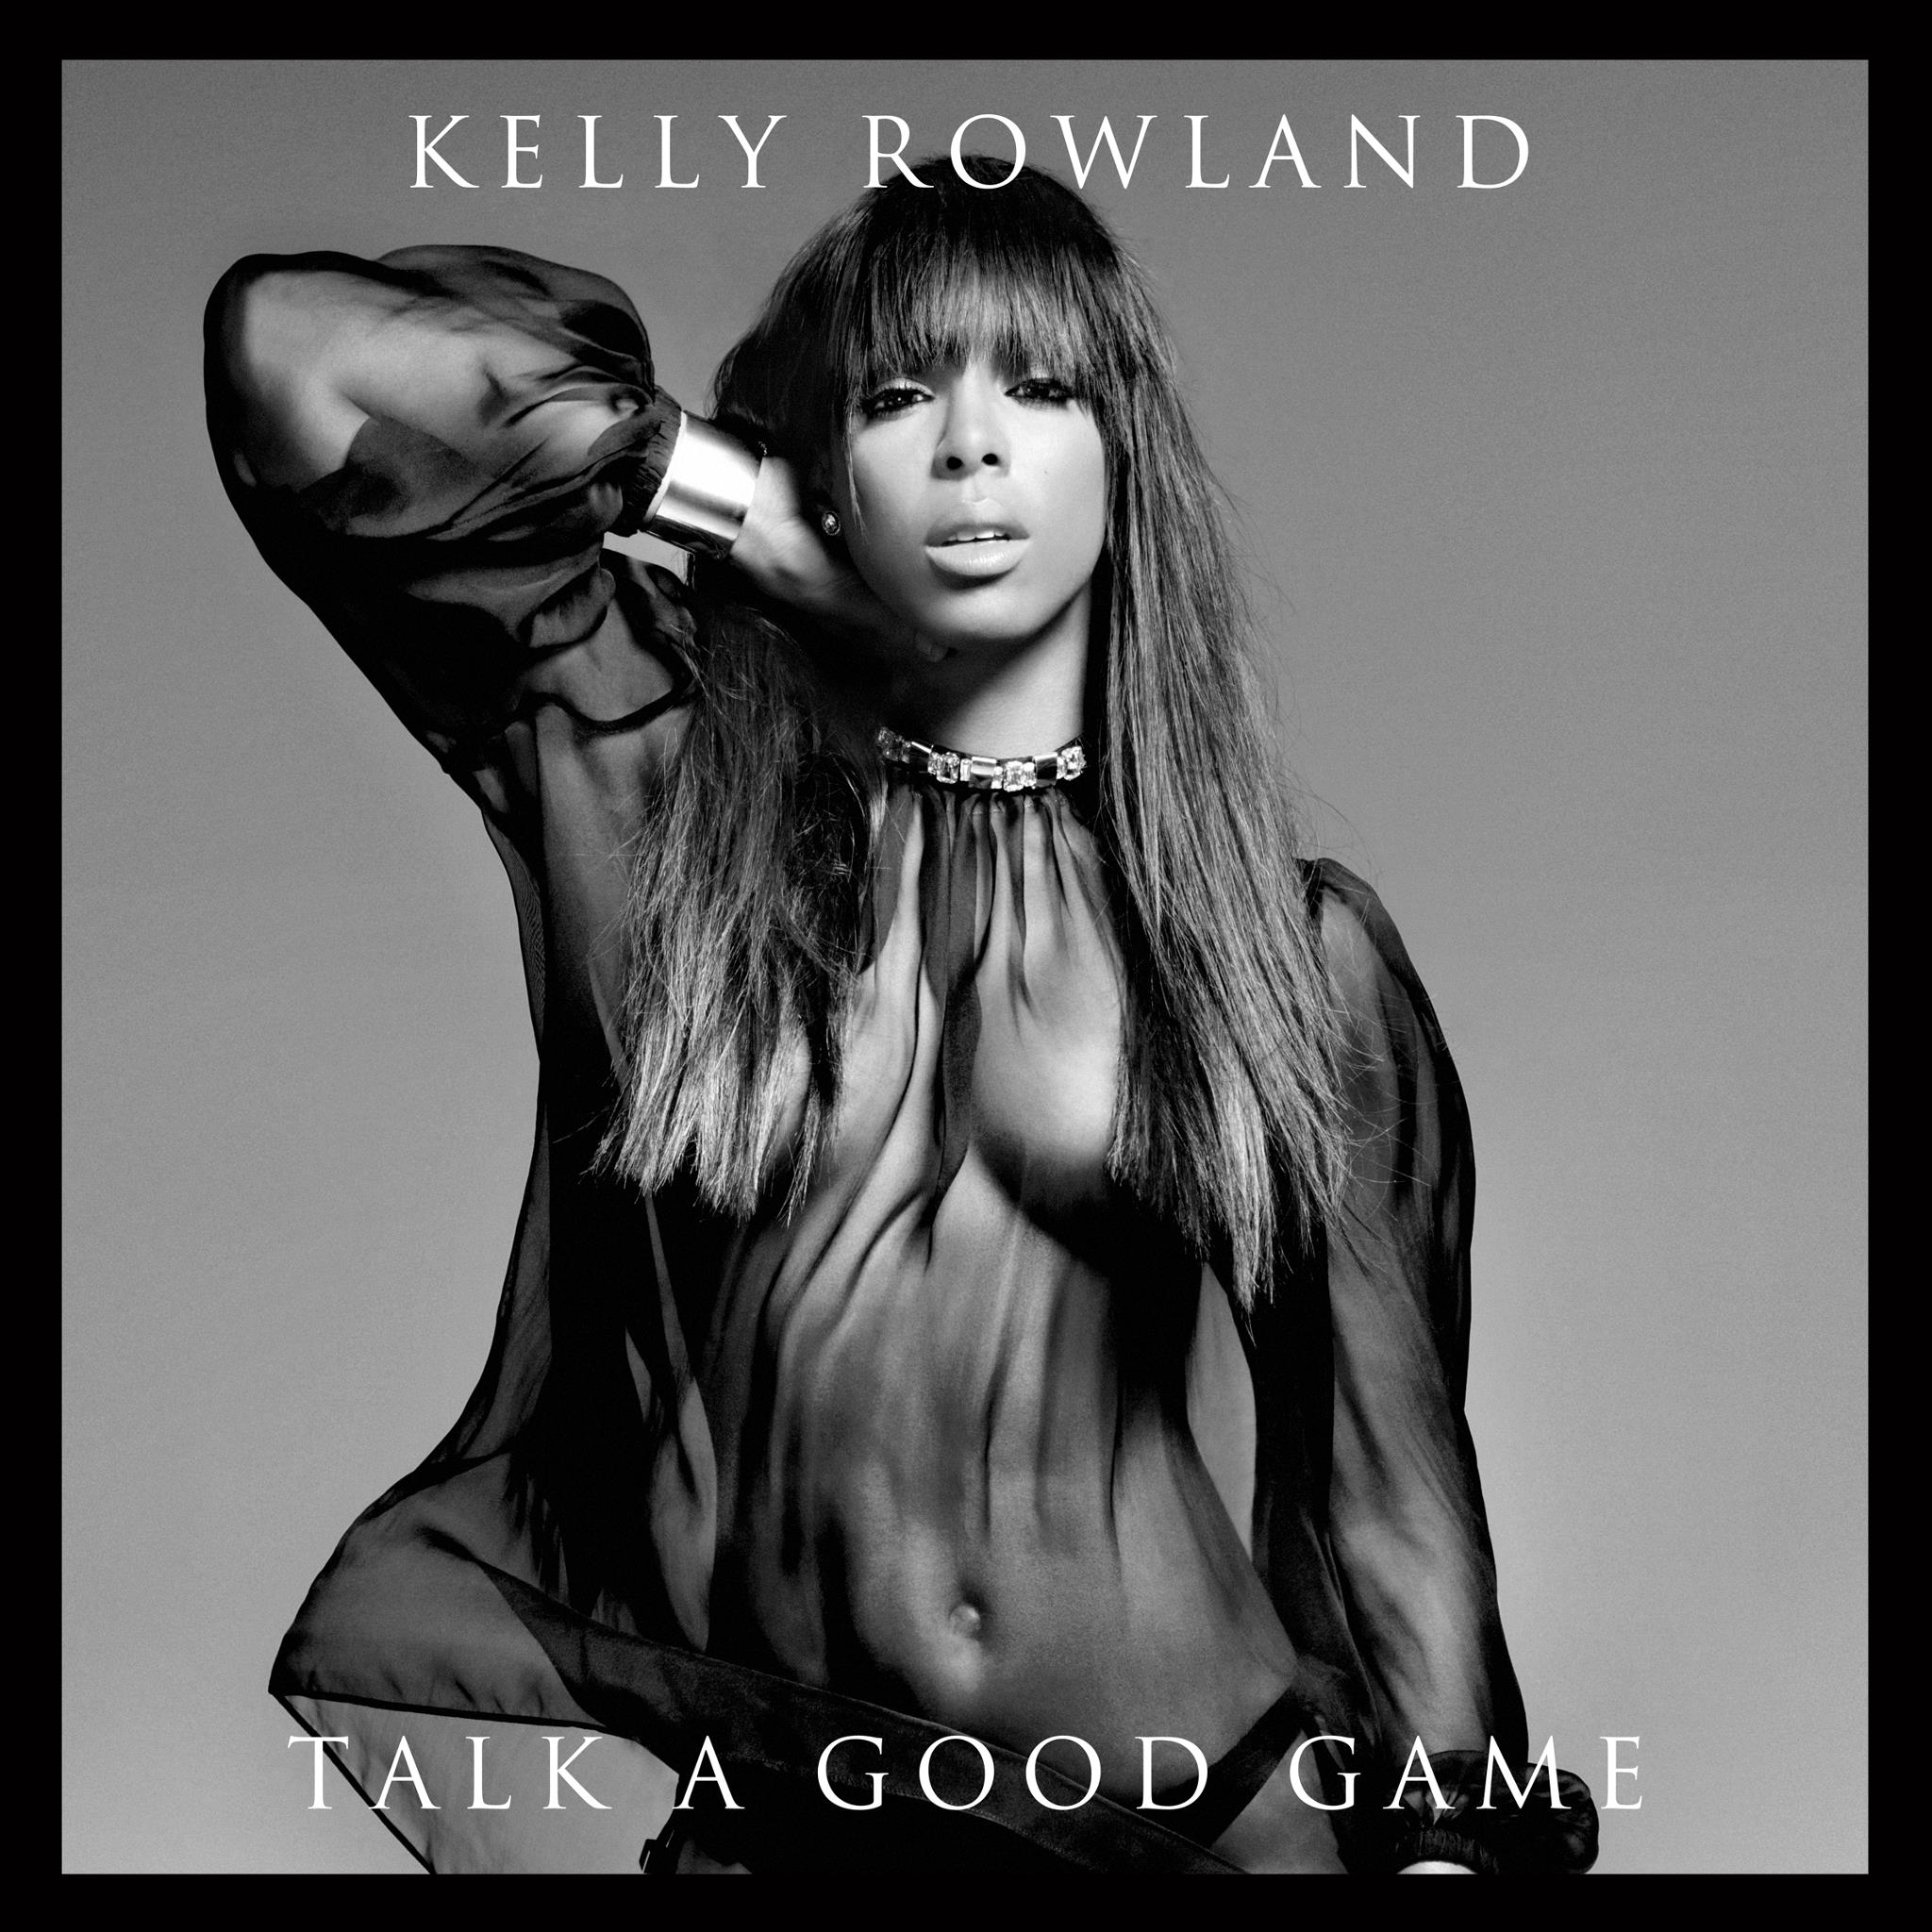 Kelly-Rowland-Talk-A-Good-Game-Album-Cover.jpg